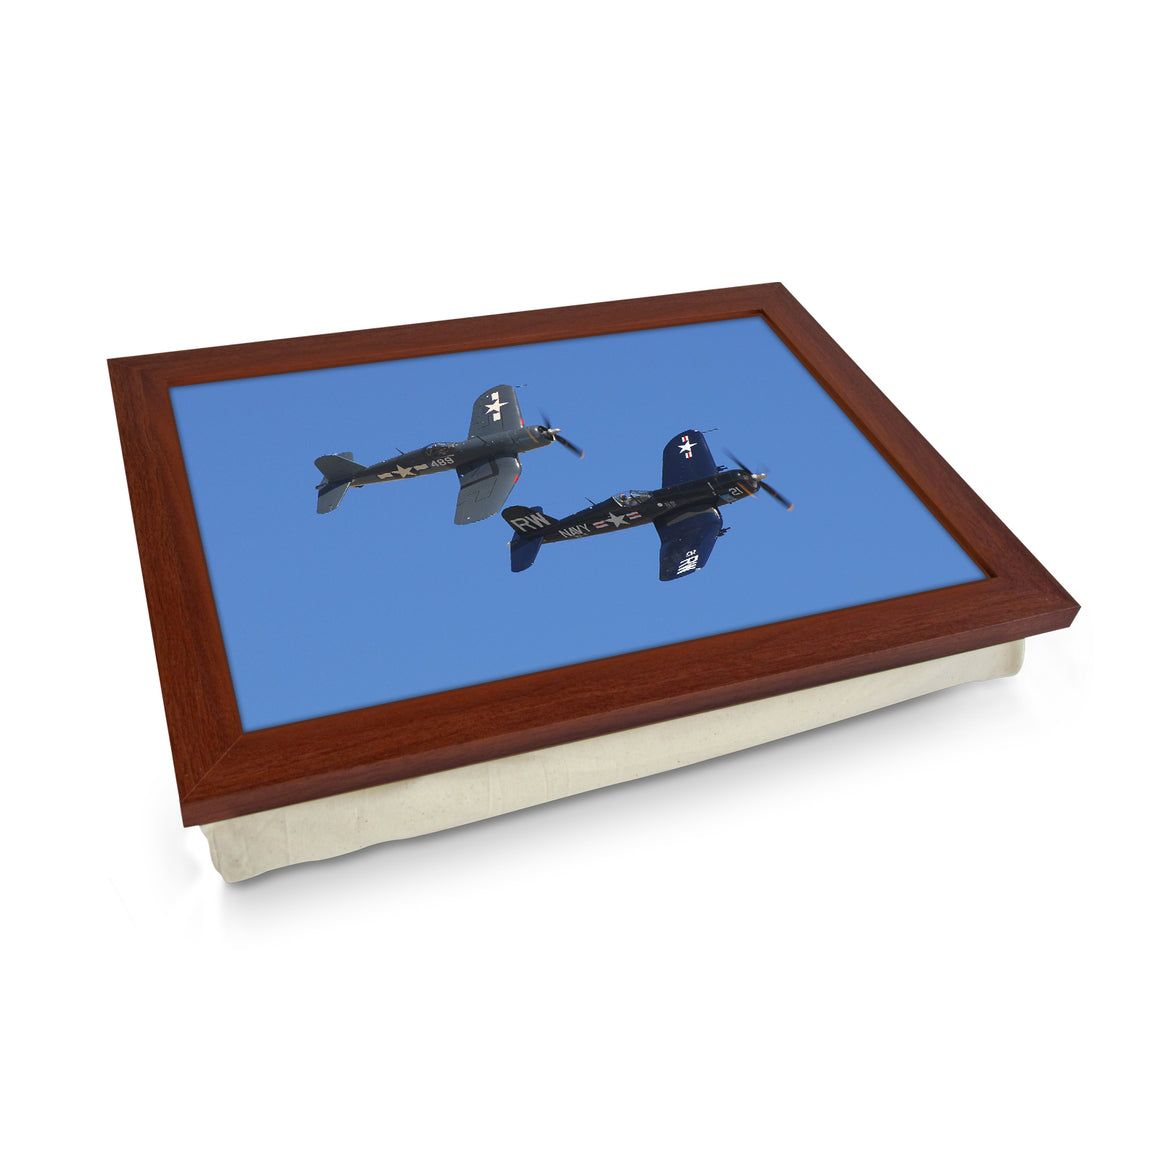 Vought F4U Corsair x2 Plane Lap Tray - AD12471